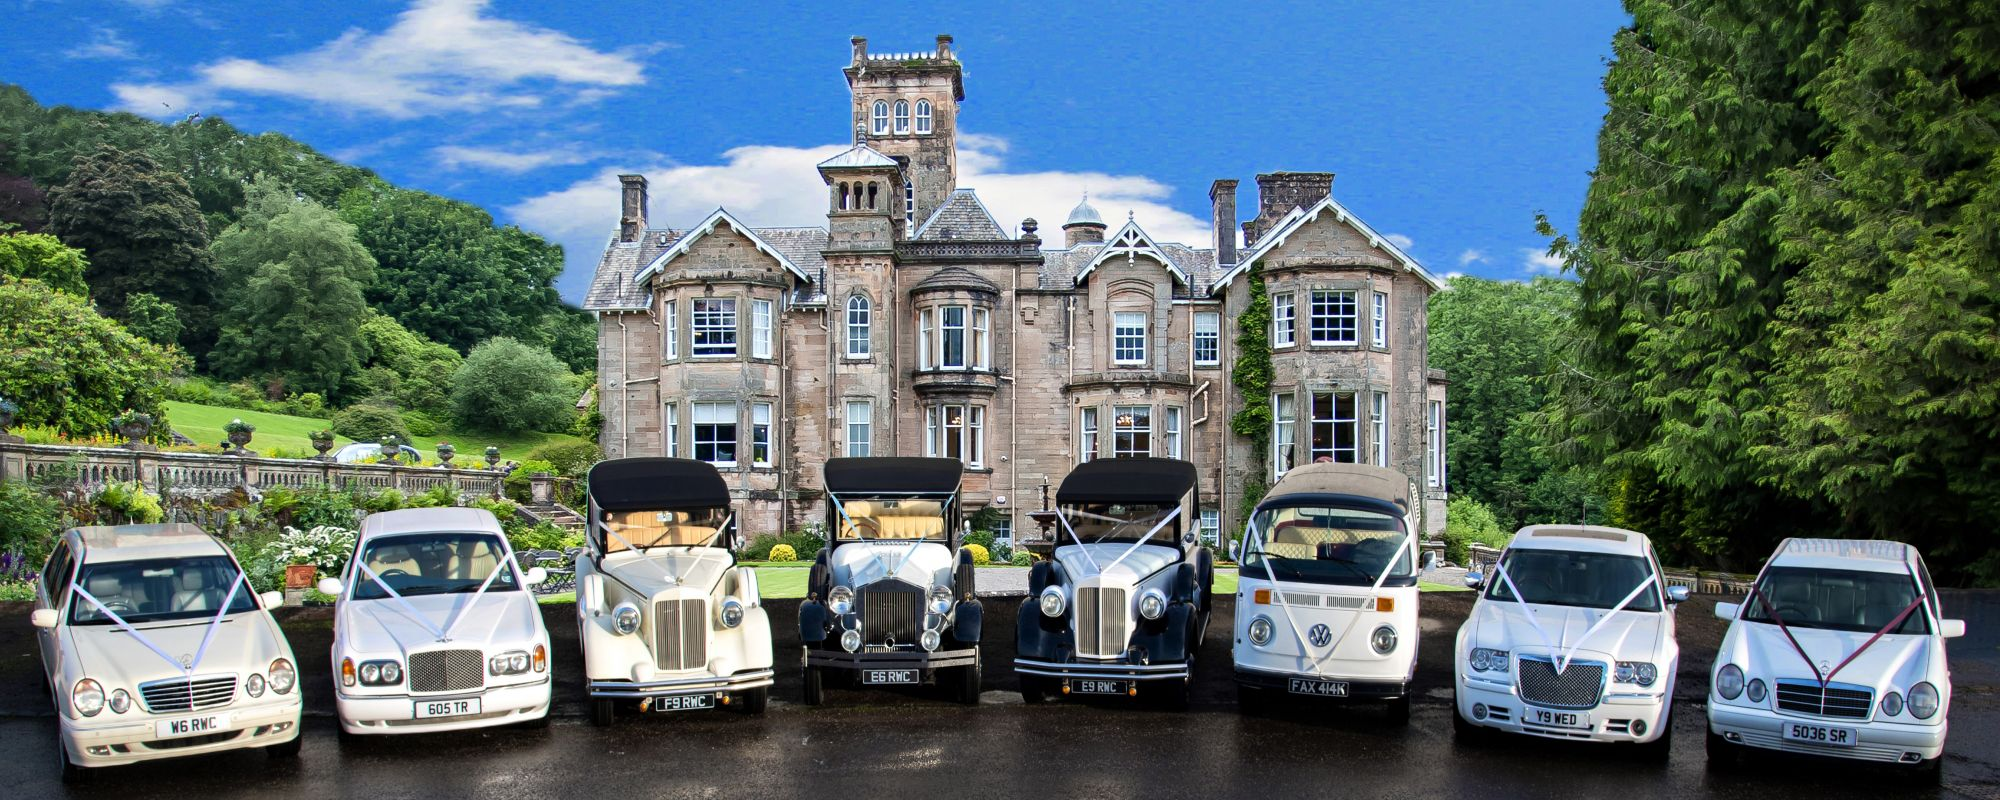 Wedding Cars Glasgow Rennick S Wedding Cars Tel 0141 6385053